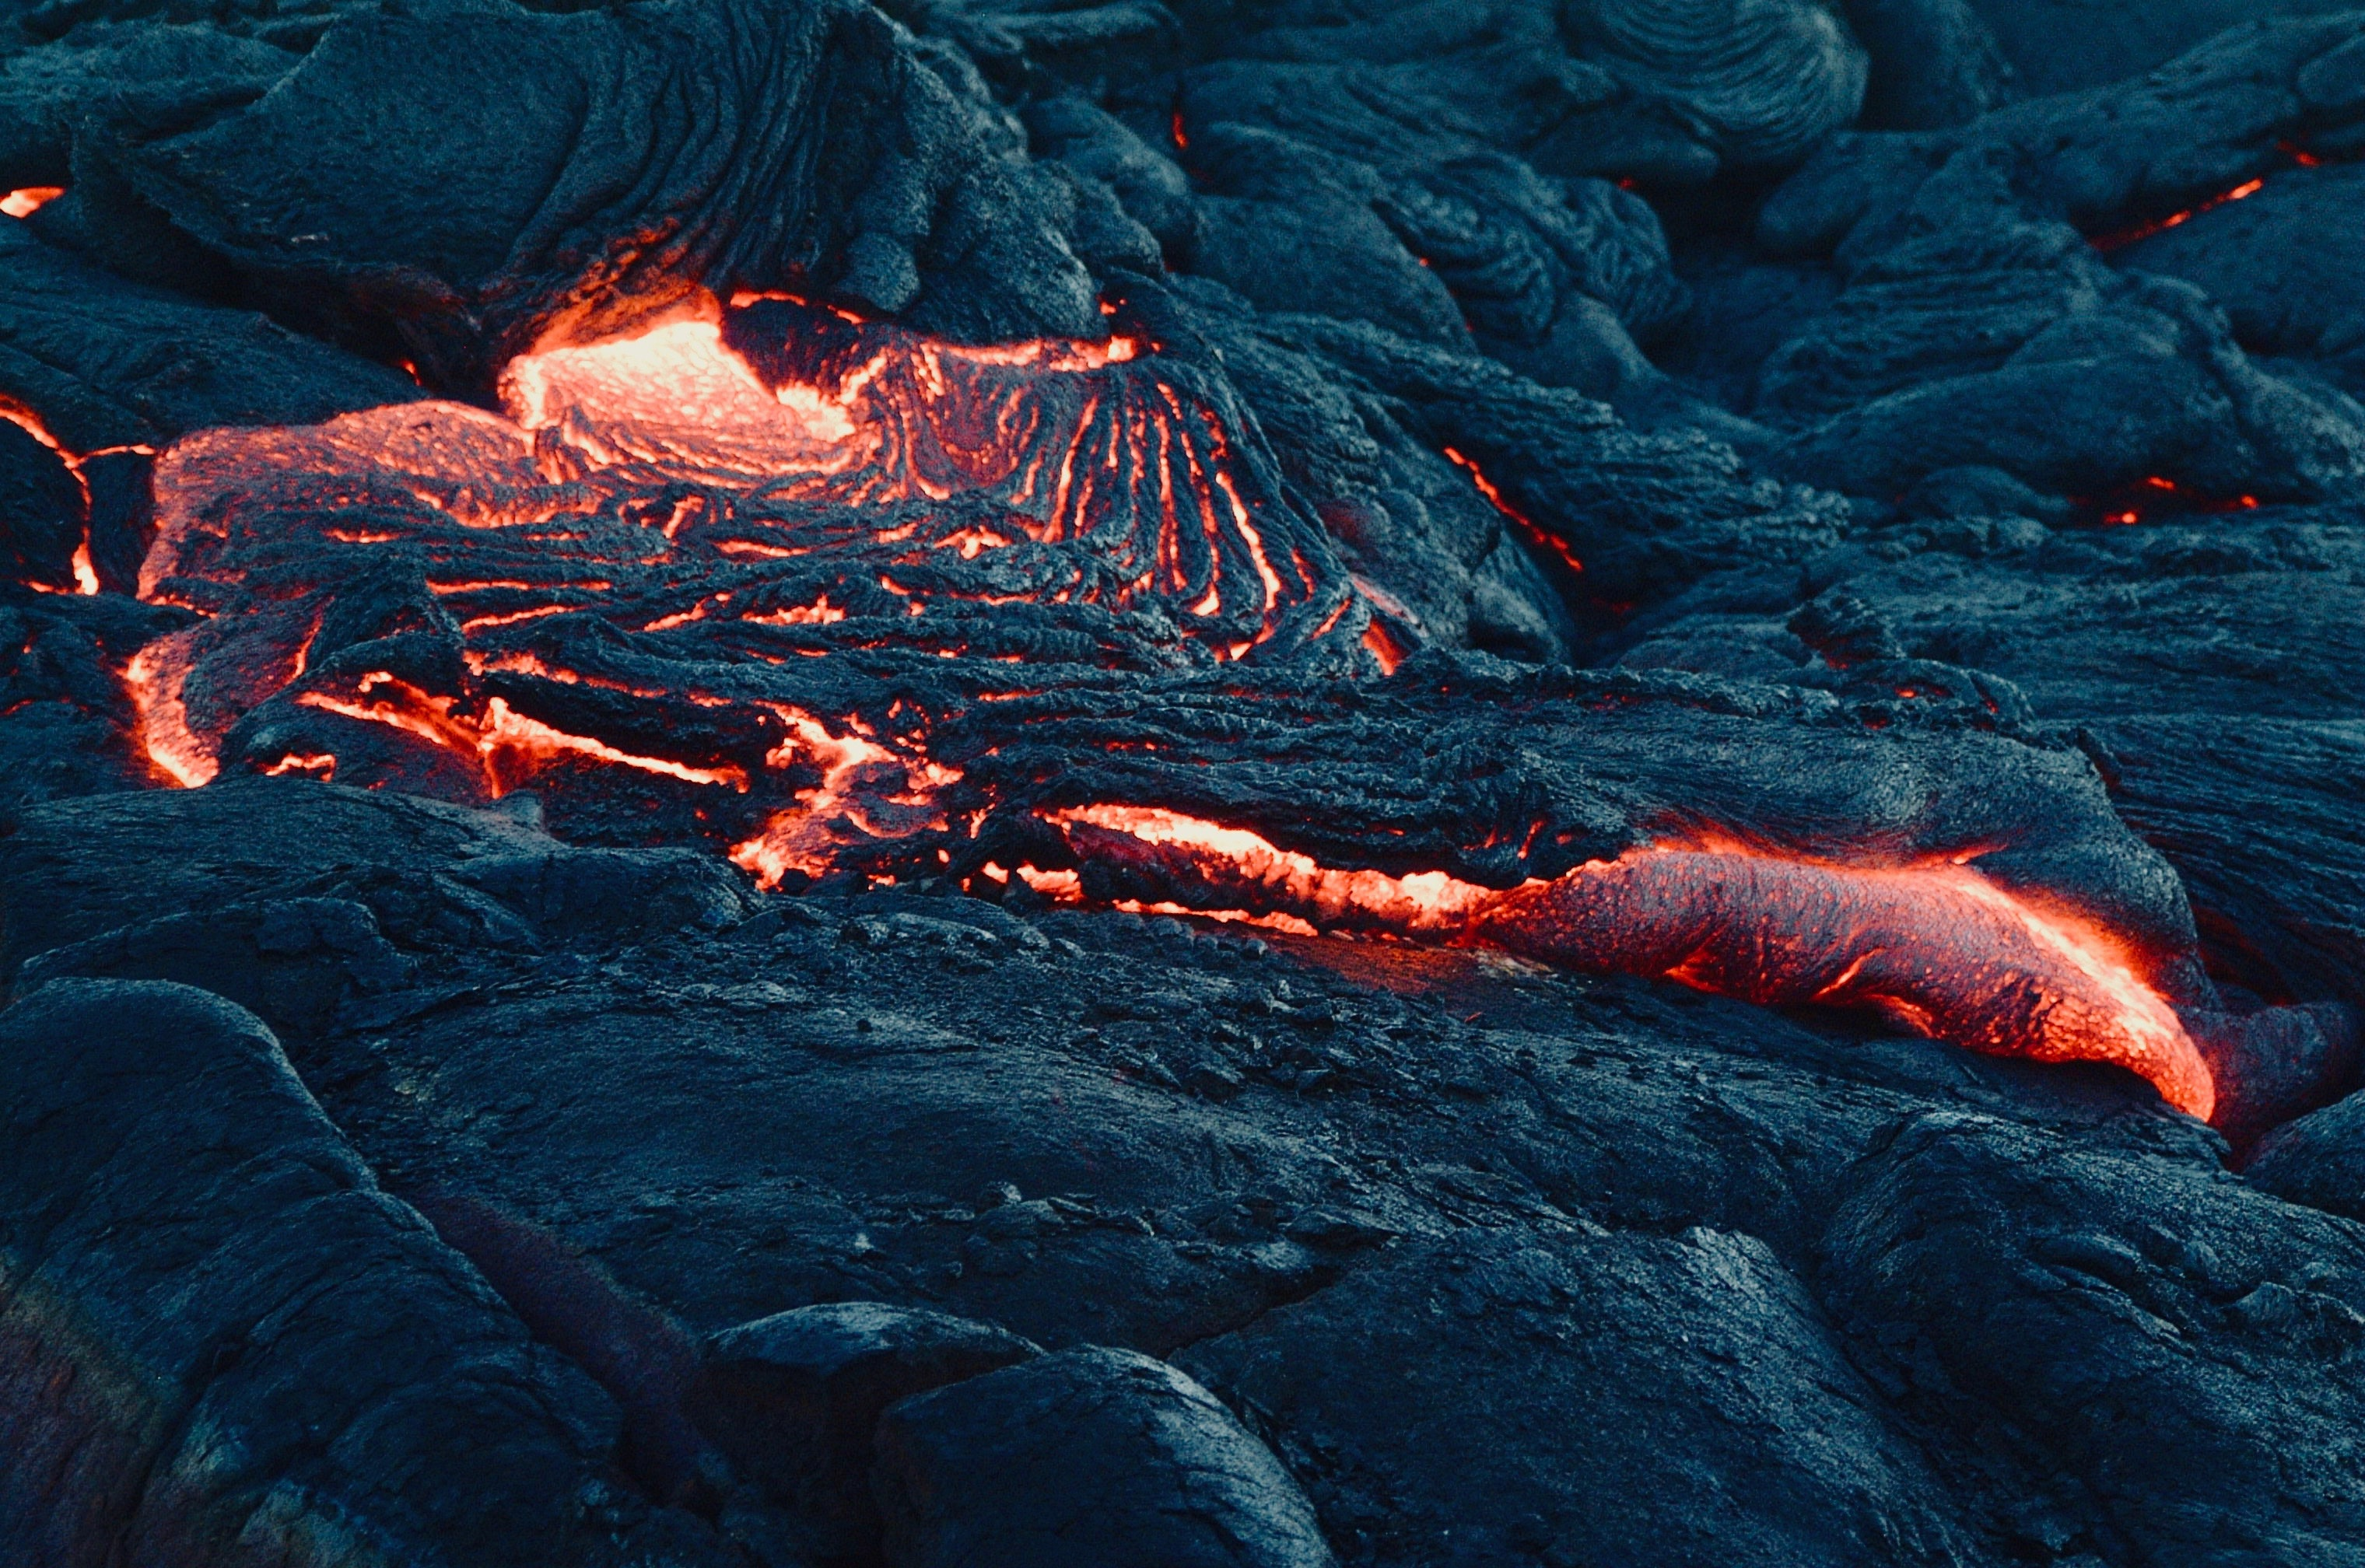 Get up close and personal with the lava.